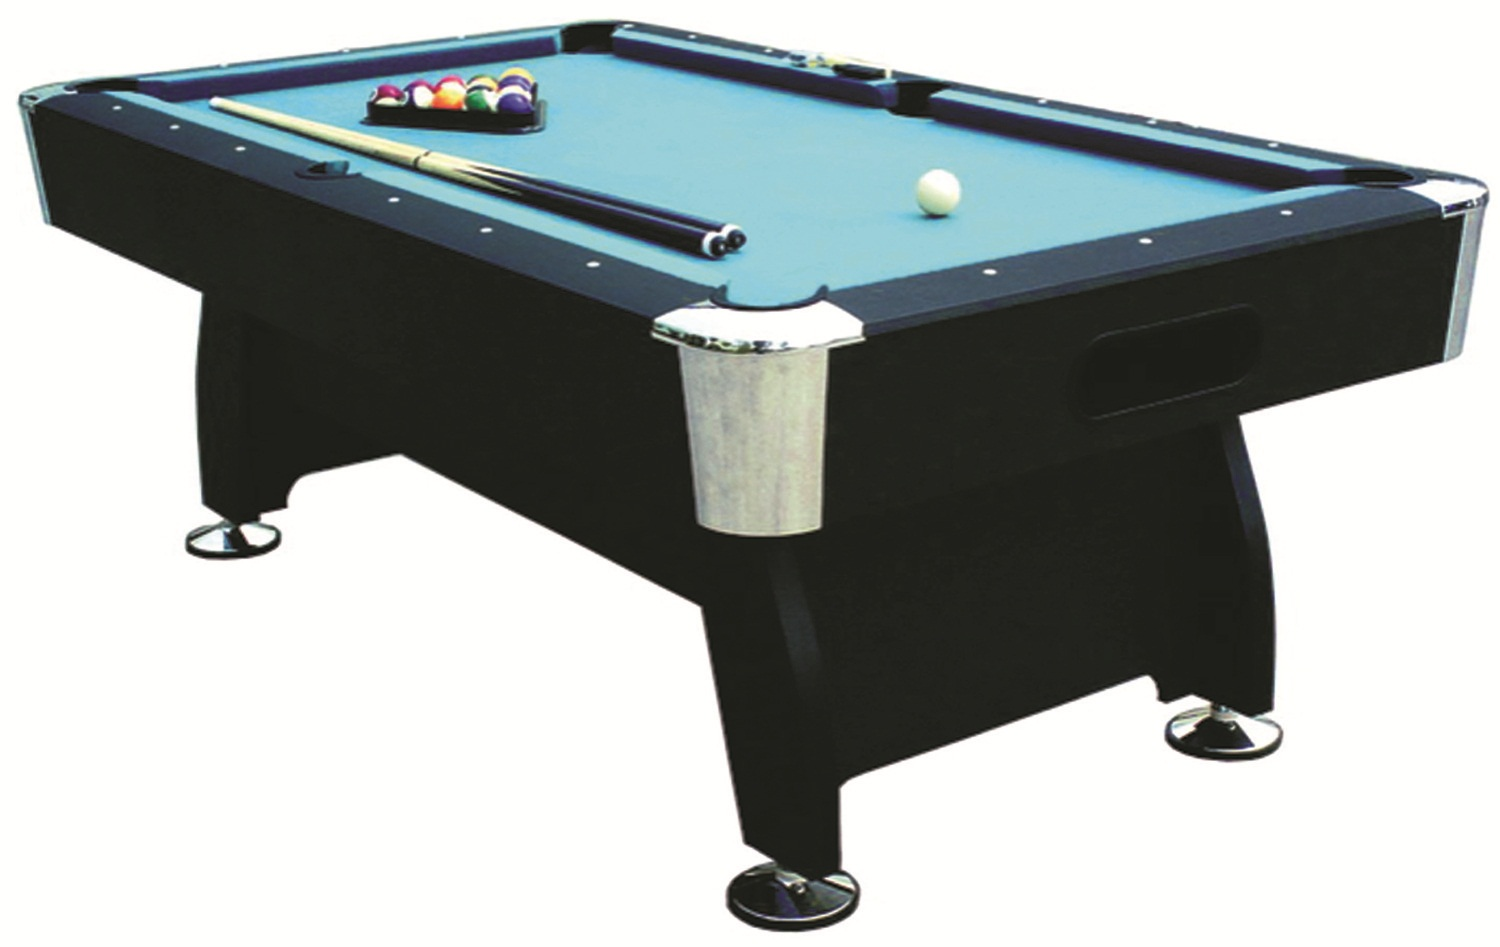 Online Sporting Goods Store Fitness Equipment Shop June - Diamond smart pool table